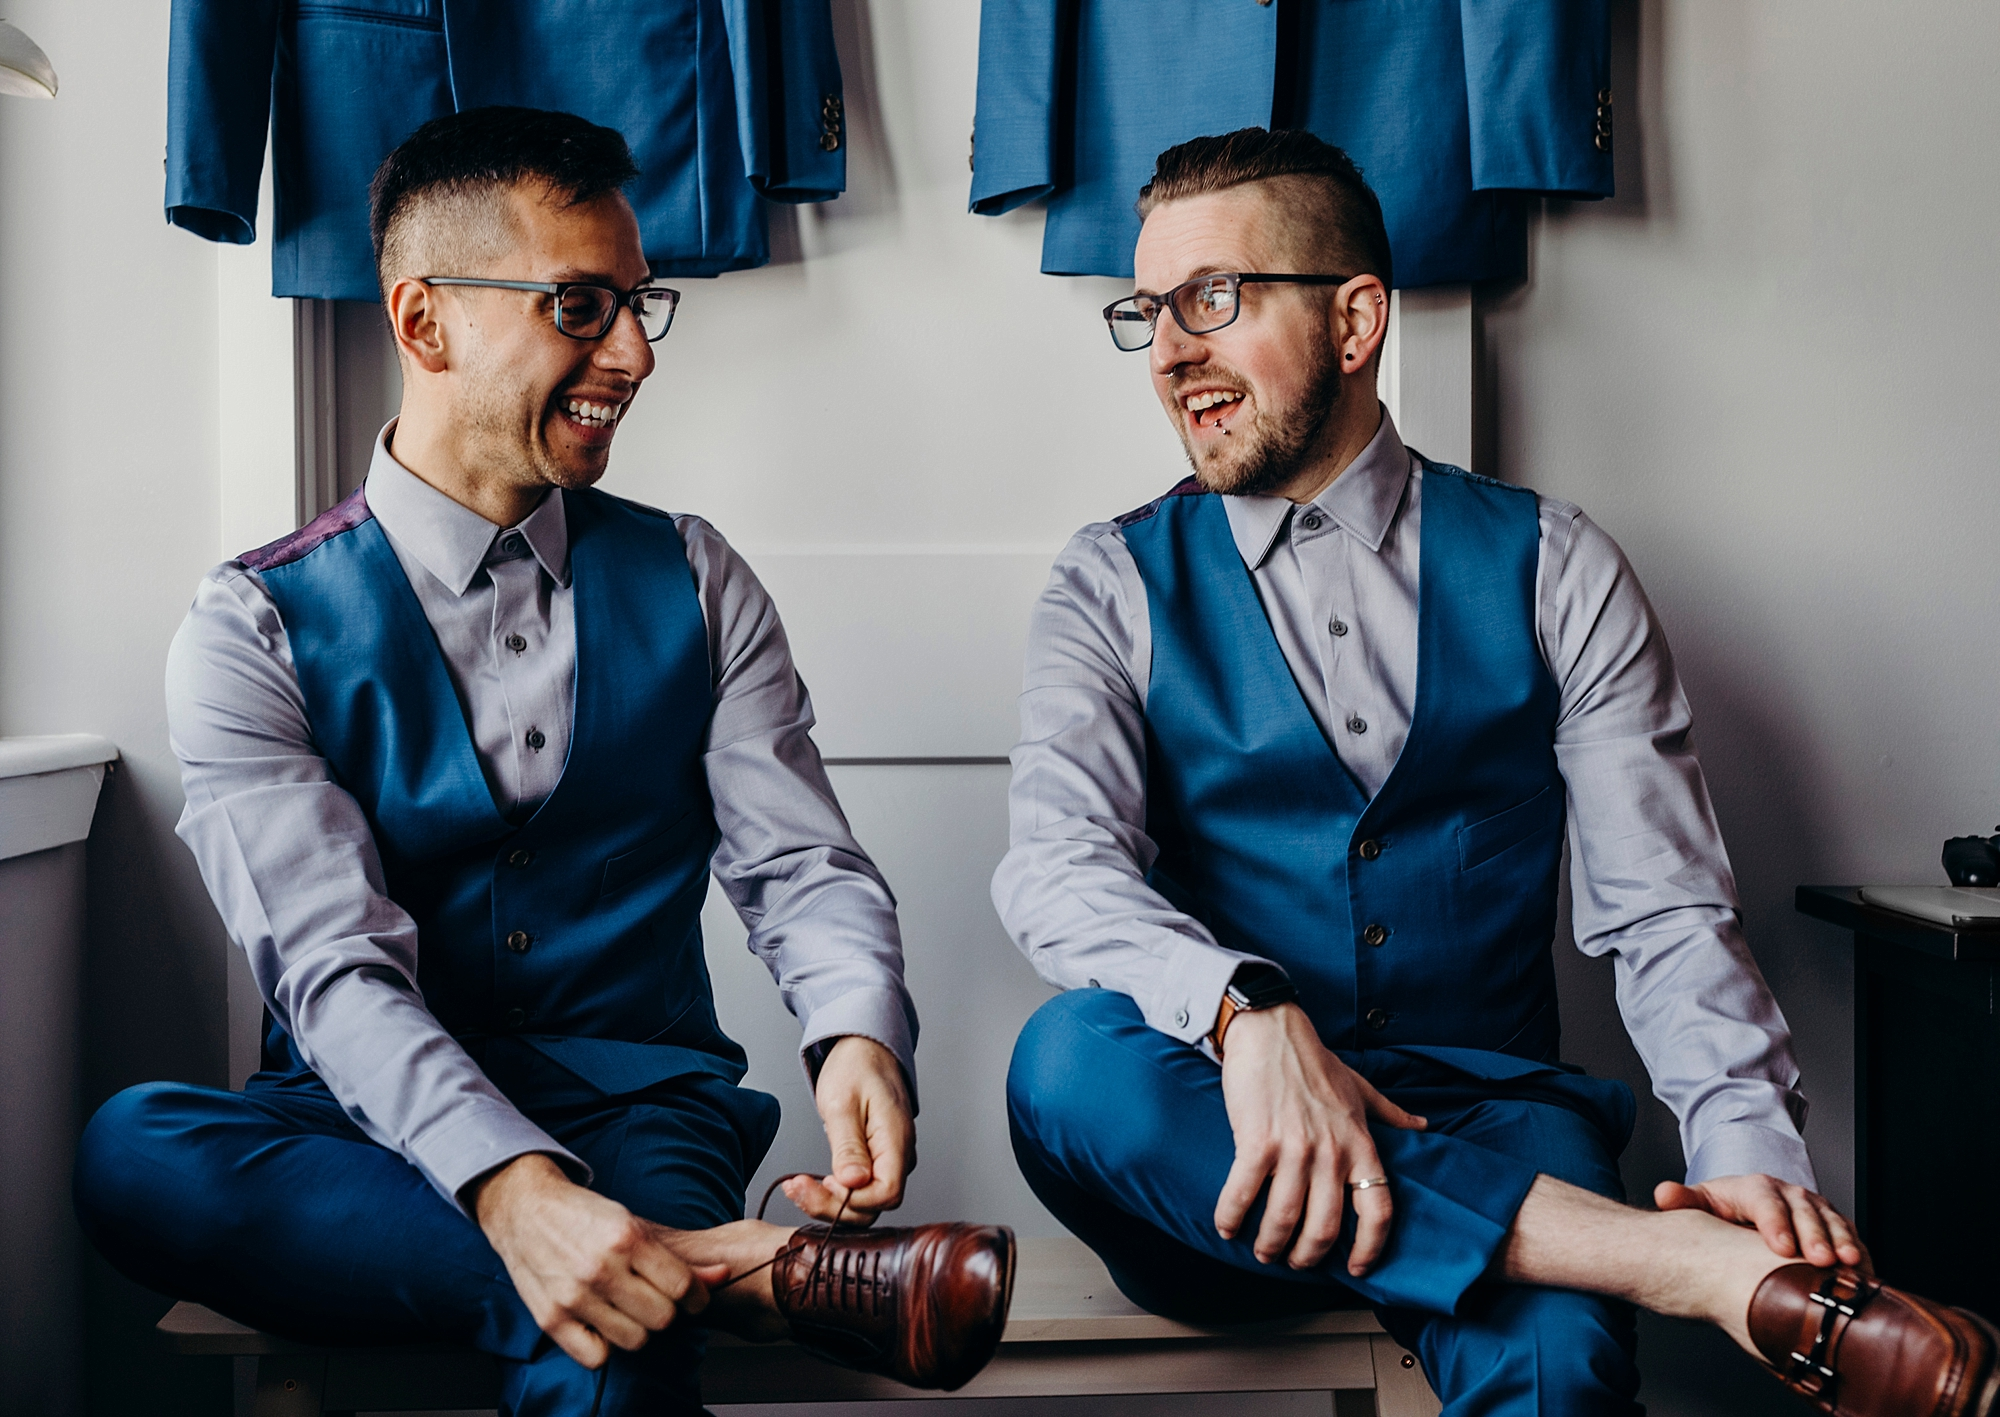 Joe_Mac_Creative_Philadelphia_Philly_LGBT_Gay_Engagement_Wedding_Photography__0049.jpg